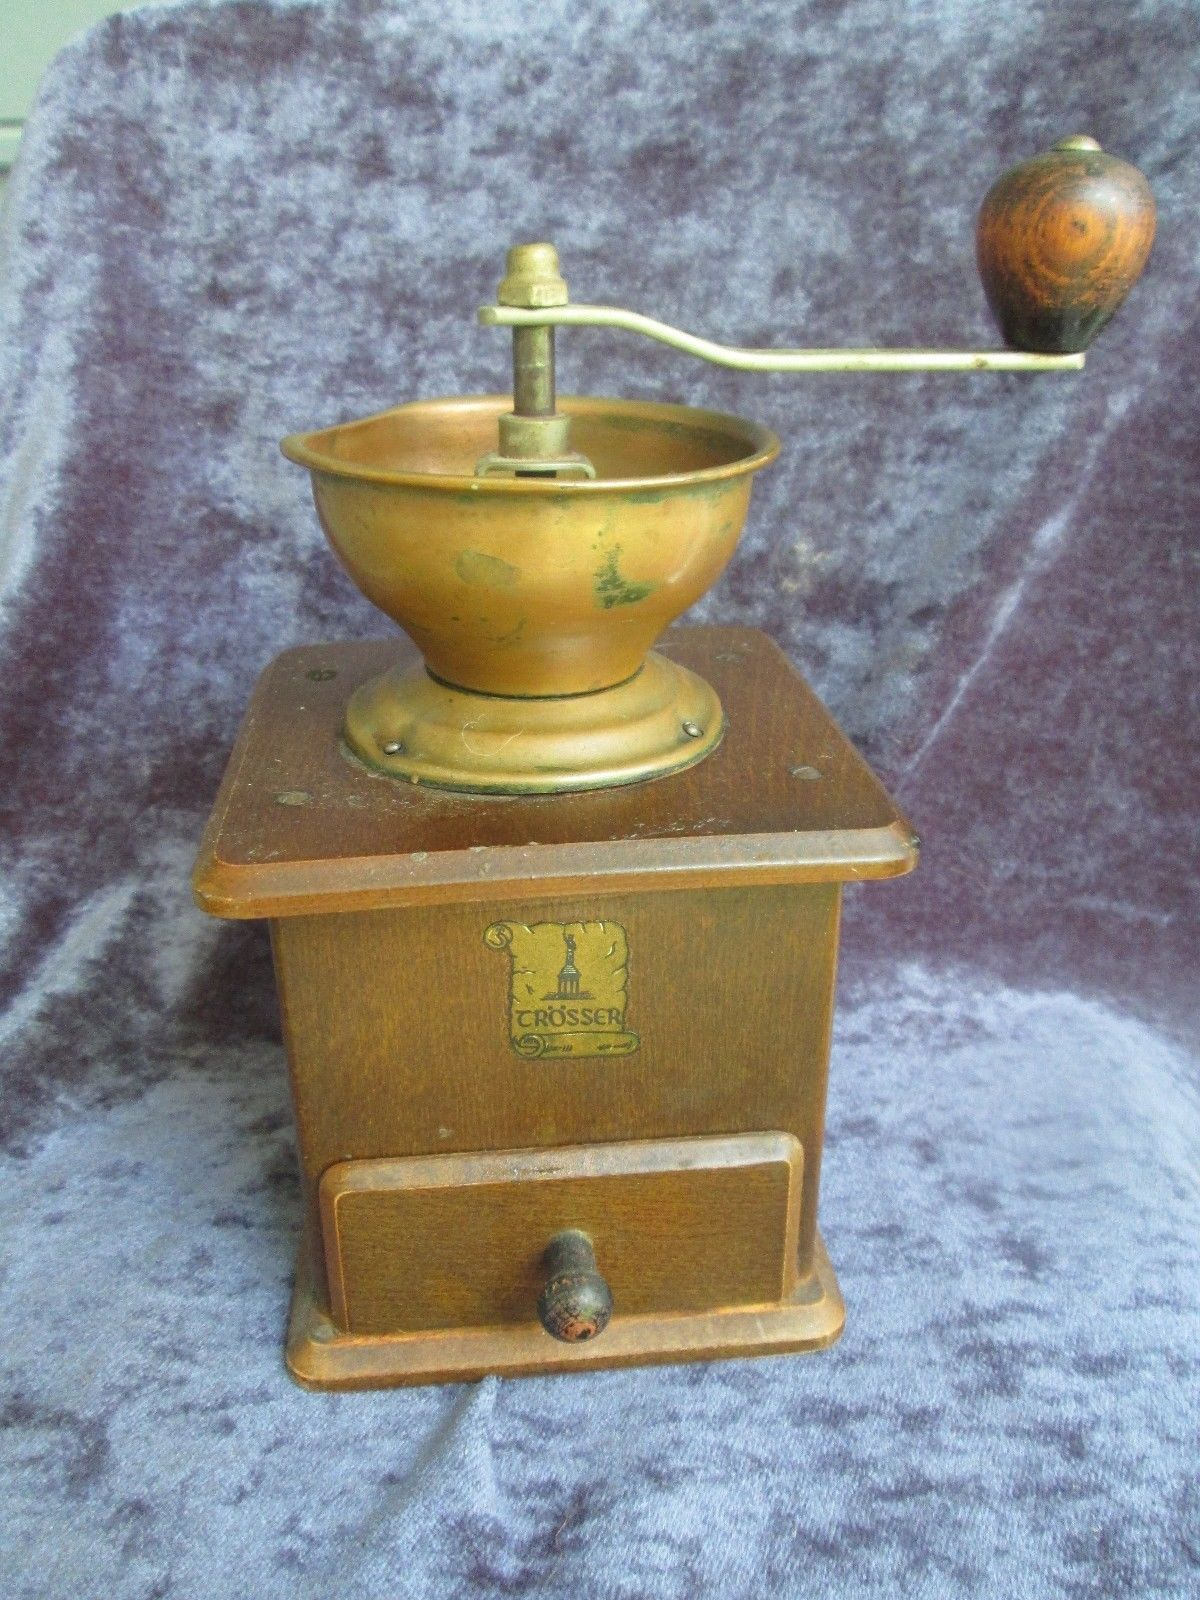 TROSSER 60s vtg wooden coffee grinder, very good condition, 7.5